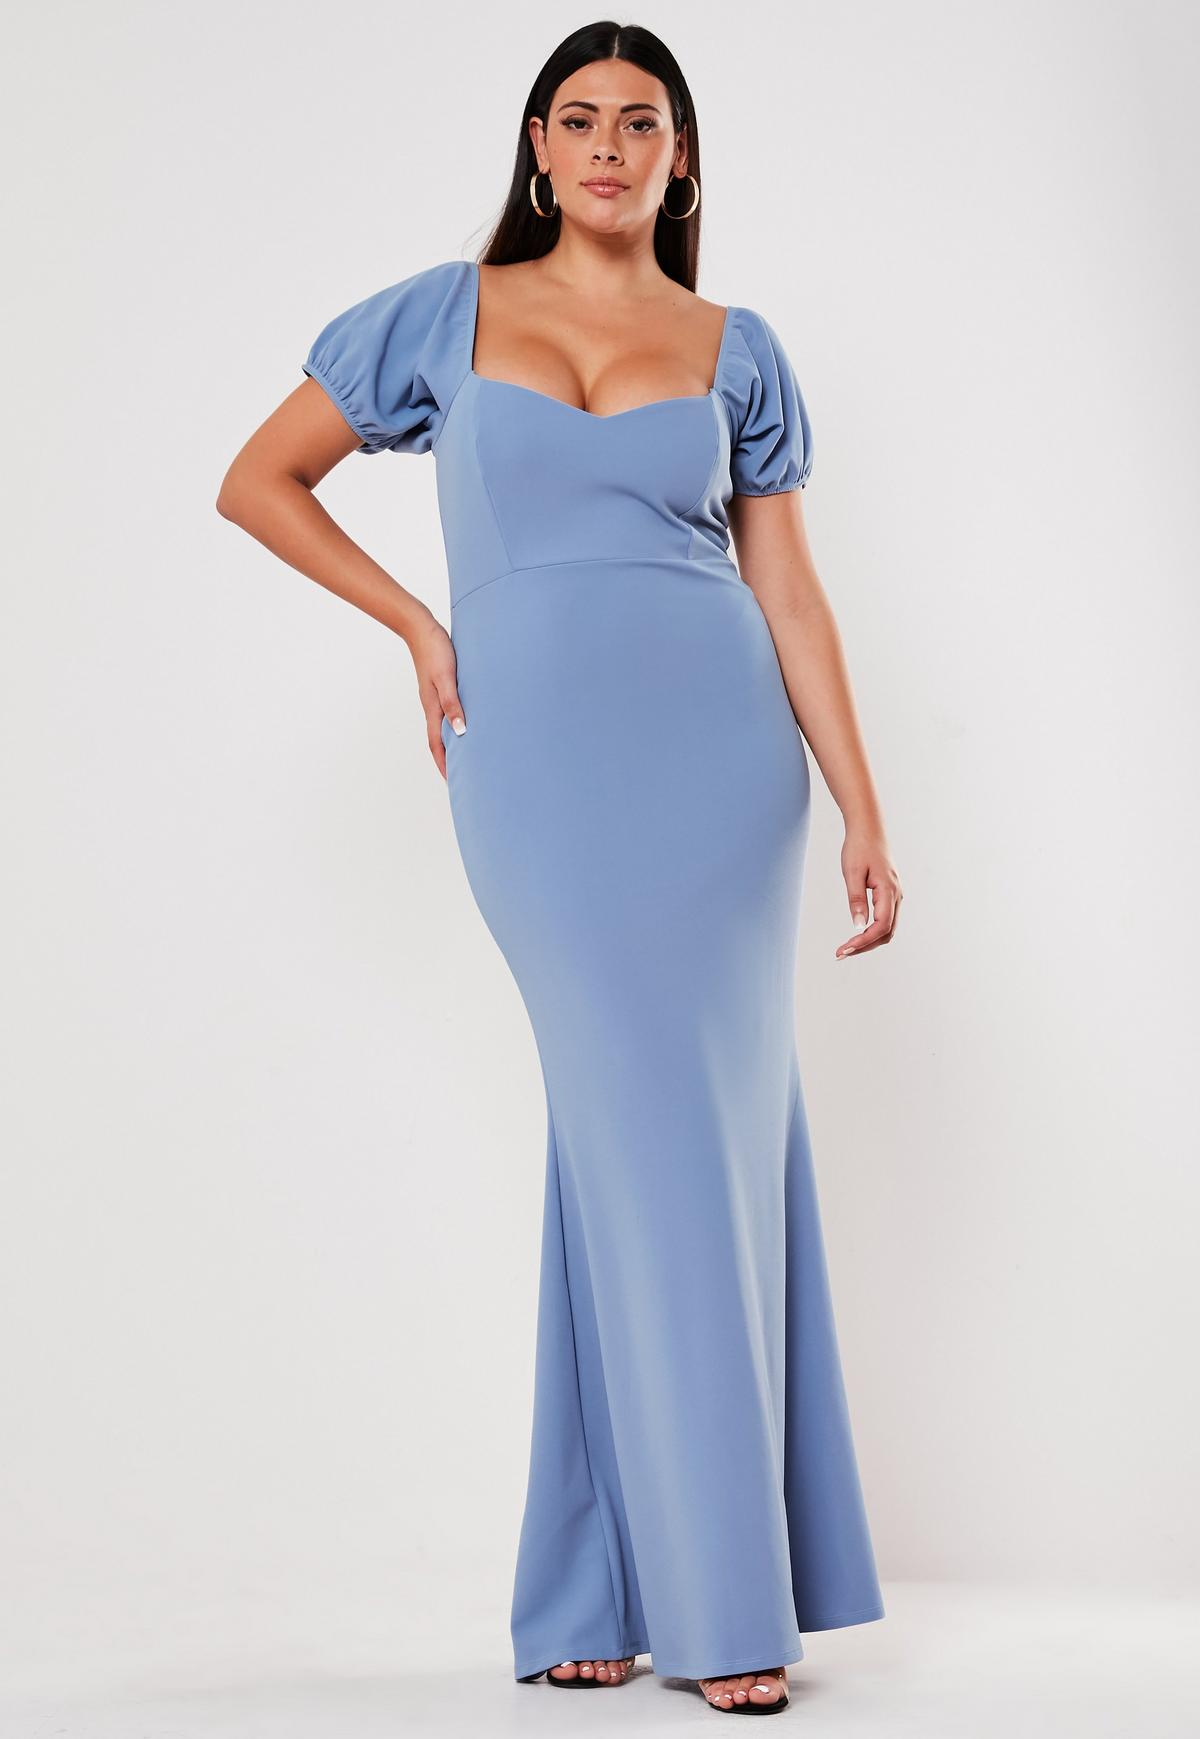 Plus Size Bridesmaid Blue Sweetheart Puff Sleeve Maxi Dress